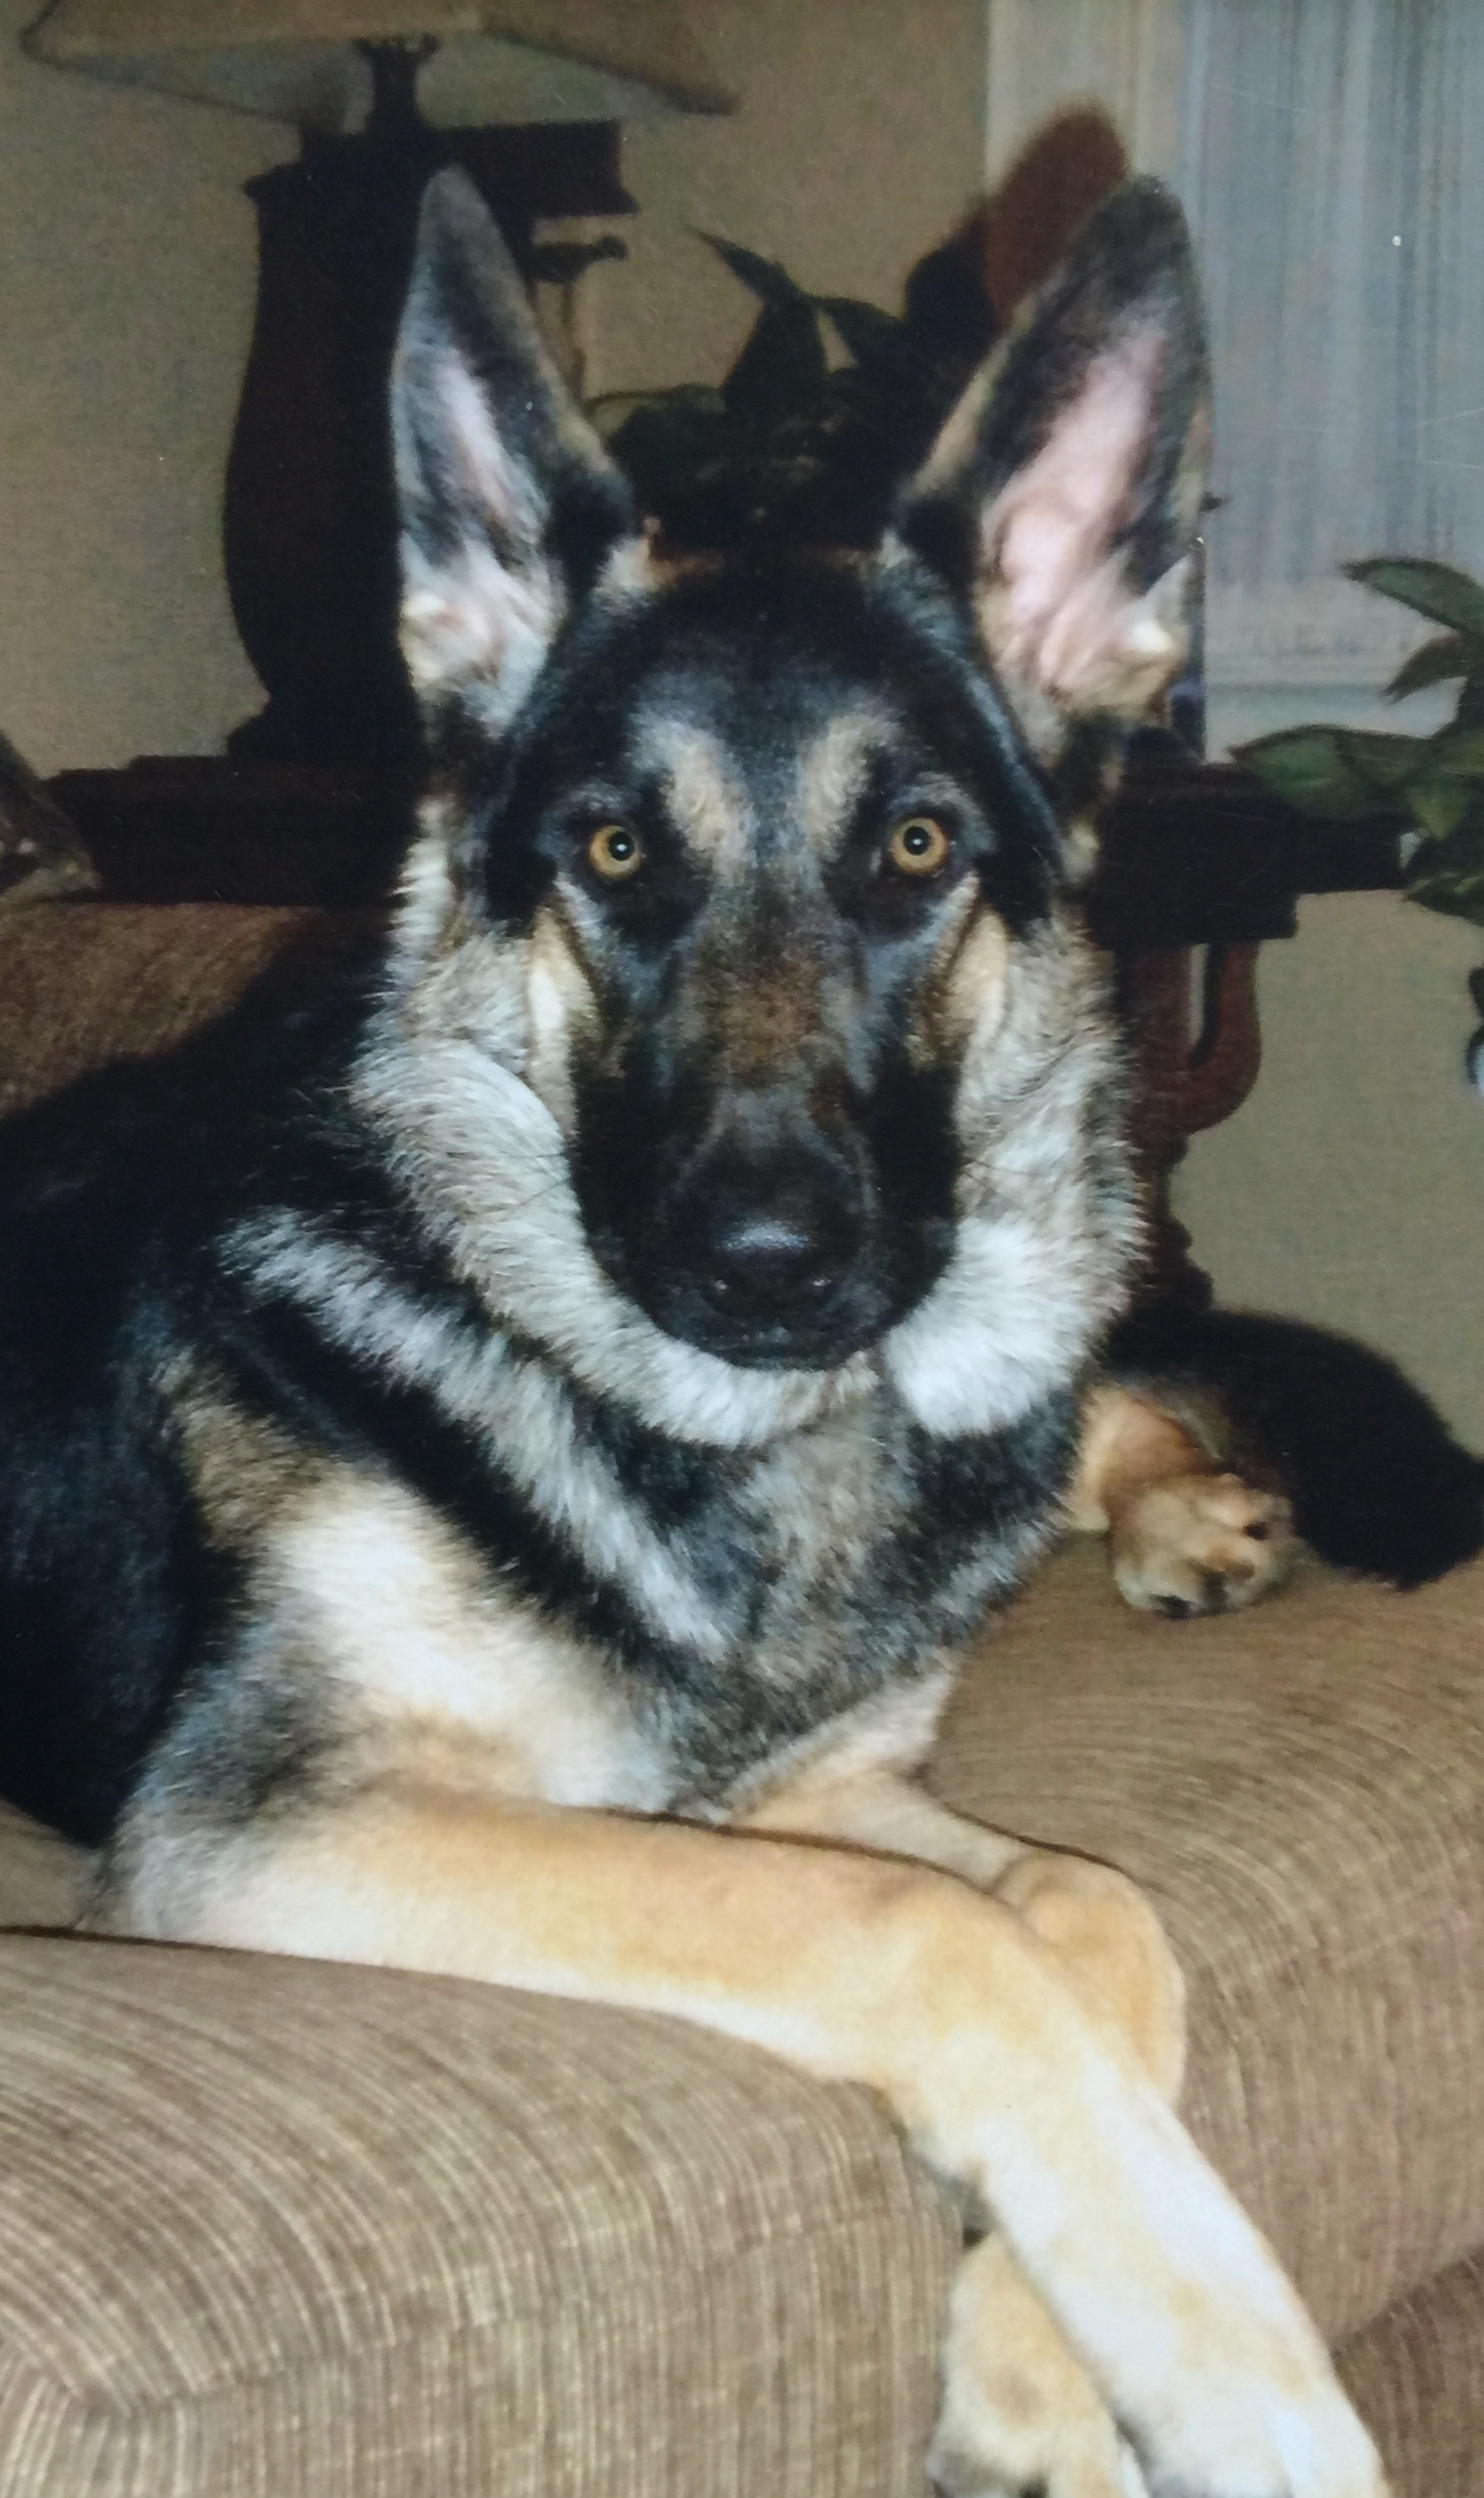 K9 Ando | Marion County Sheriff's Office, Indiana